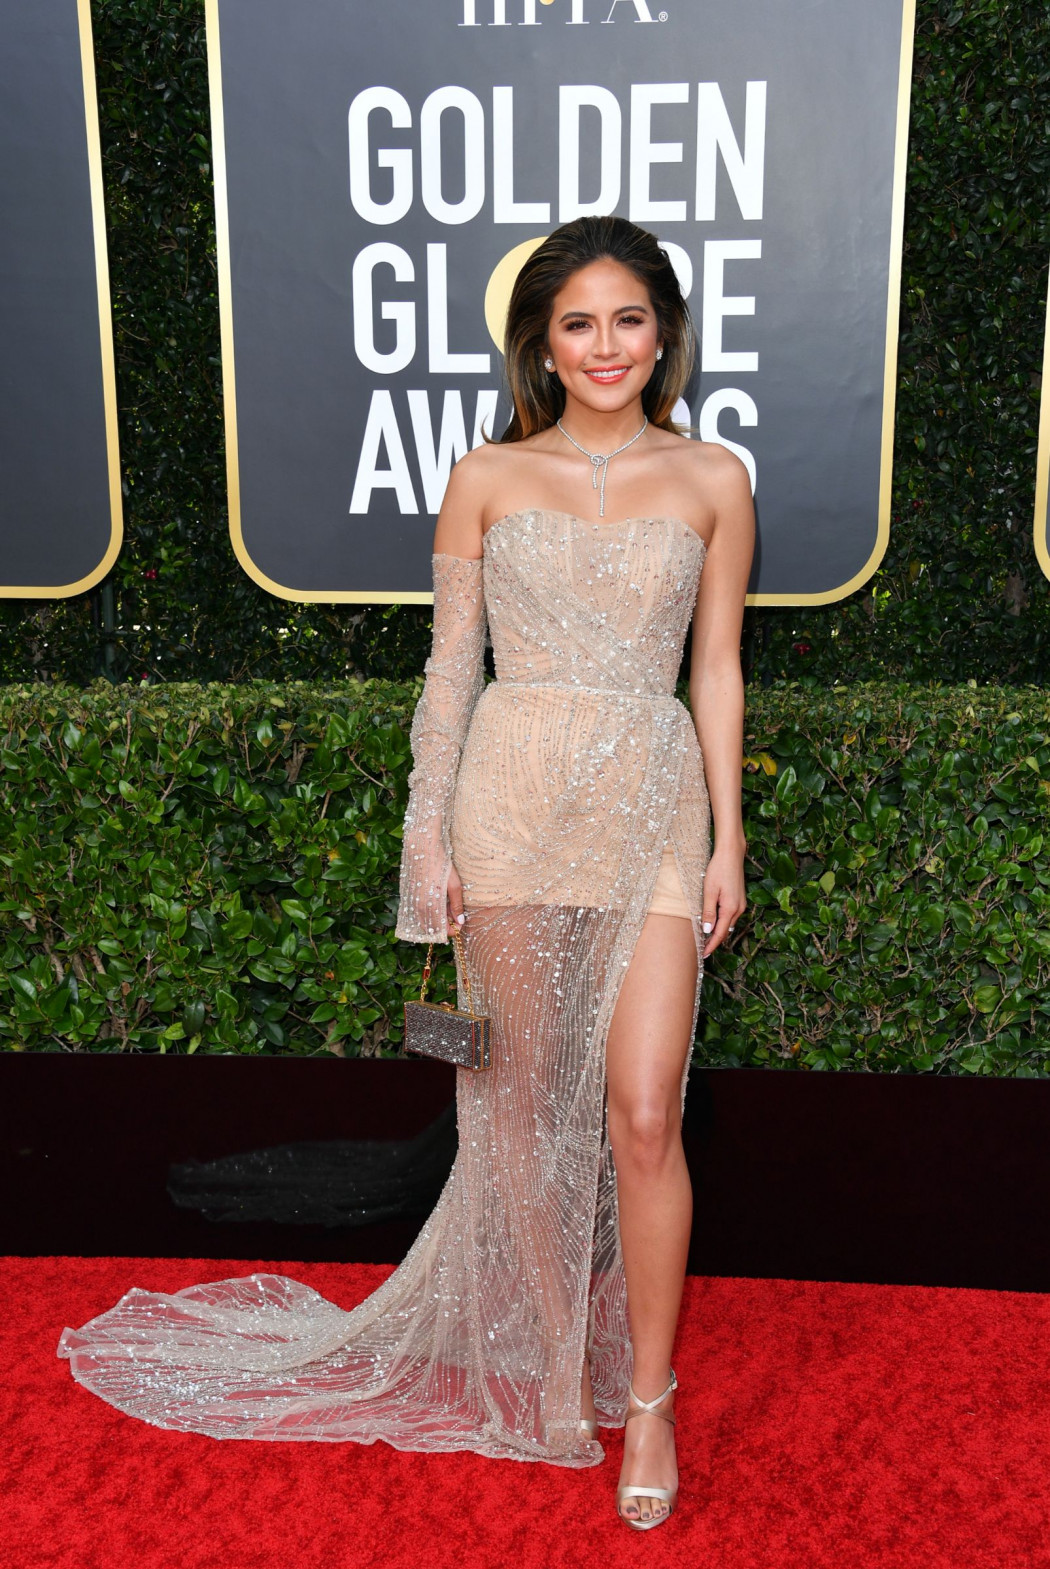 Golden Globes 2020 : les plus beaux looks du tapis rouge - 26